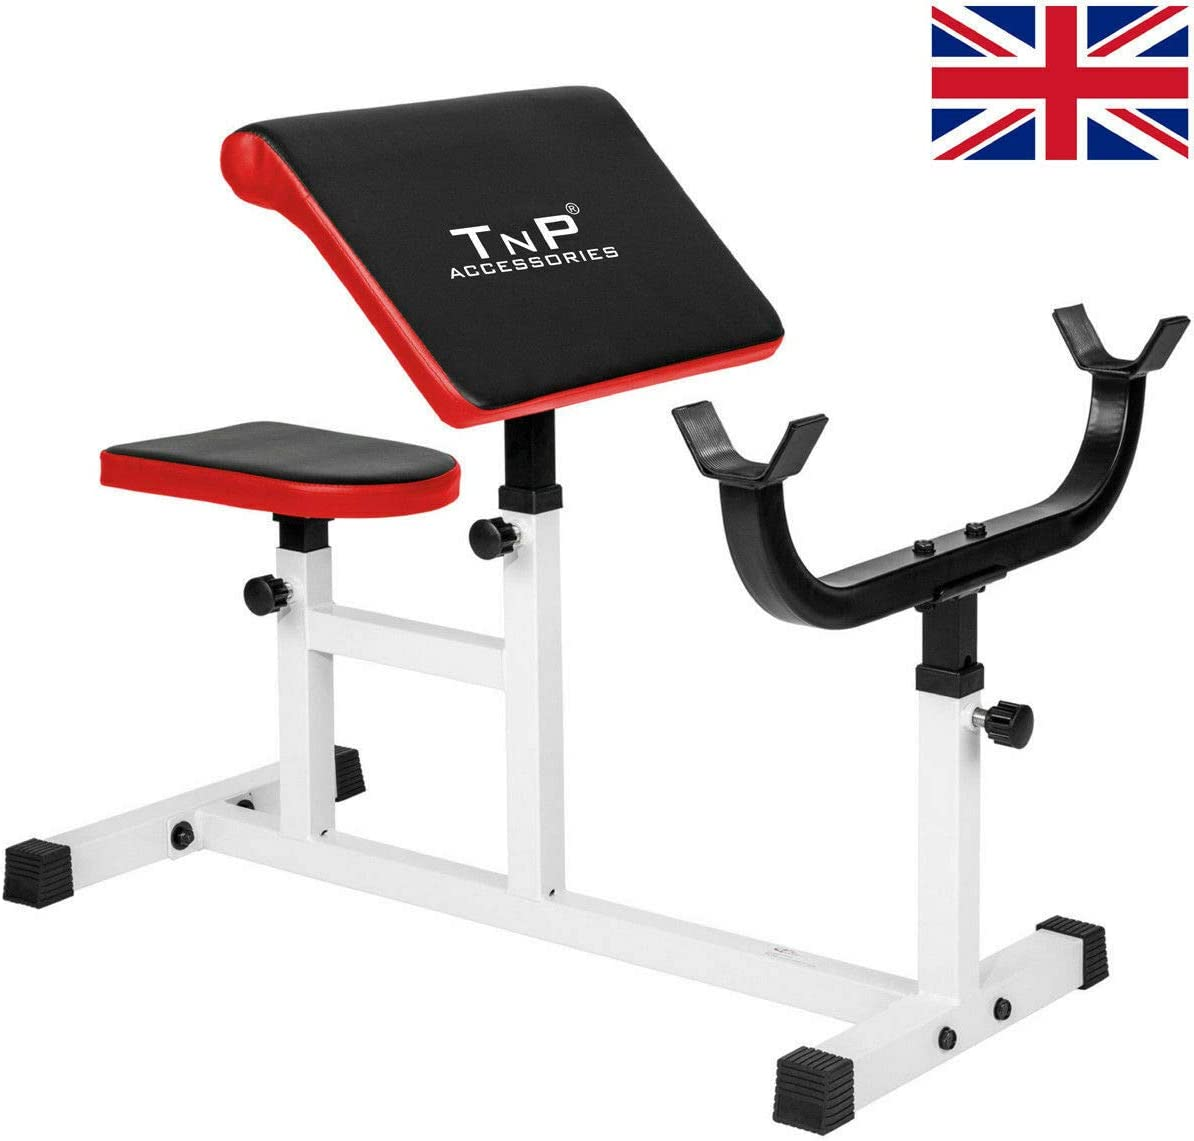 25KG EZ Curl Bar Barbell Weight Set TnP Accessories Adjustable Heavy Duty Steel Preacher Arm Curl Weight Bench Biceps Weightlifting Gym Fitness Equipment Barbell Rack New